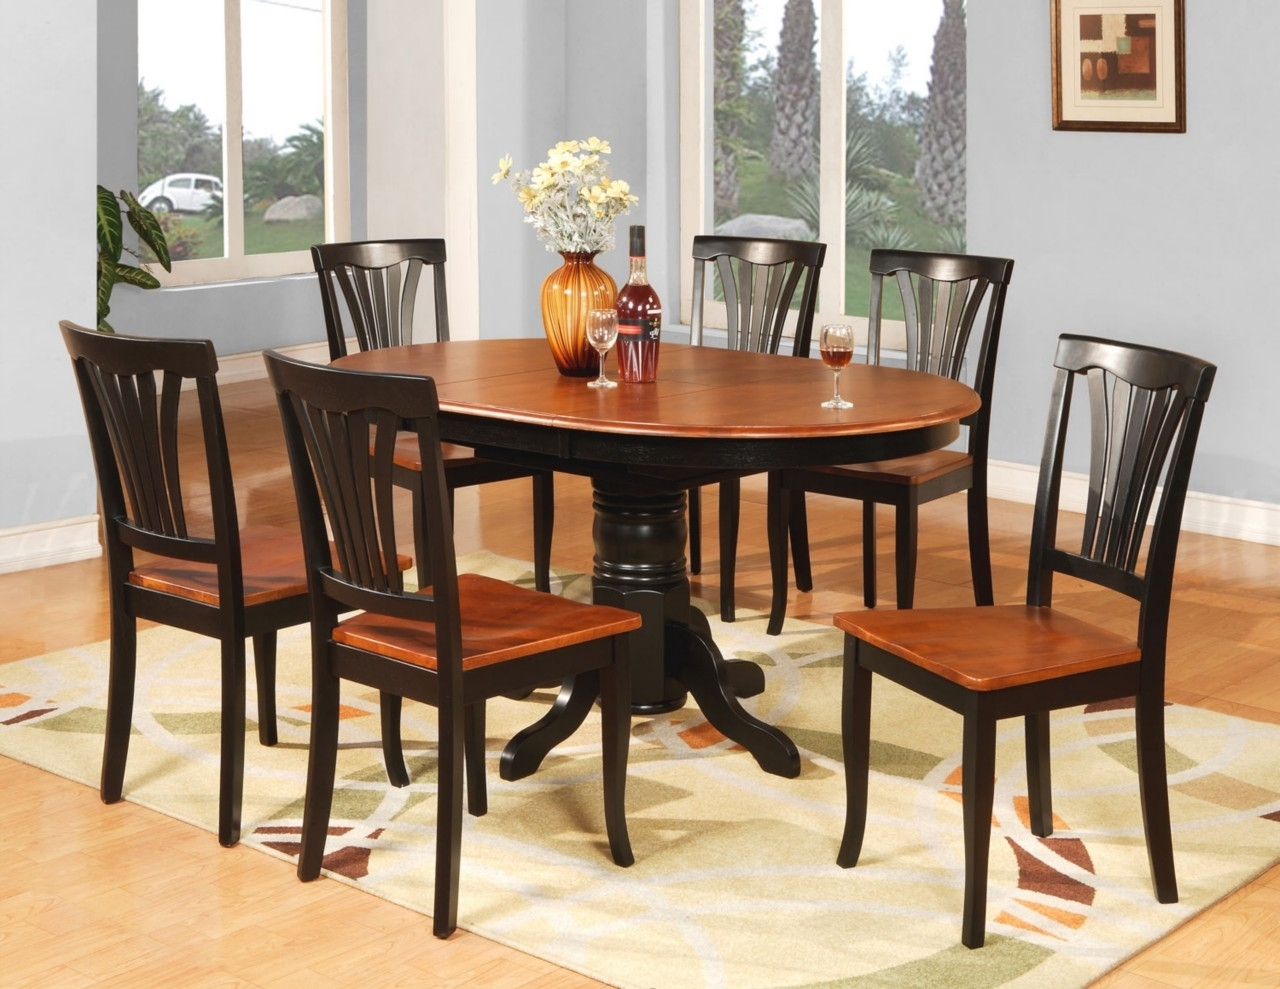 Oval Shape Pedestal Dining Table For 6 With Brown Painted Also Teak With Regard To Popular Wood Dining Tables And 6 Chairs (View 20 of 25)